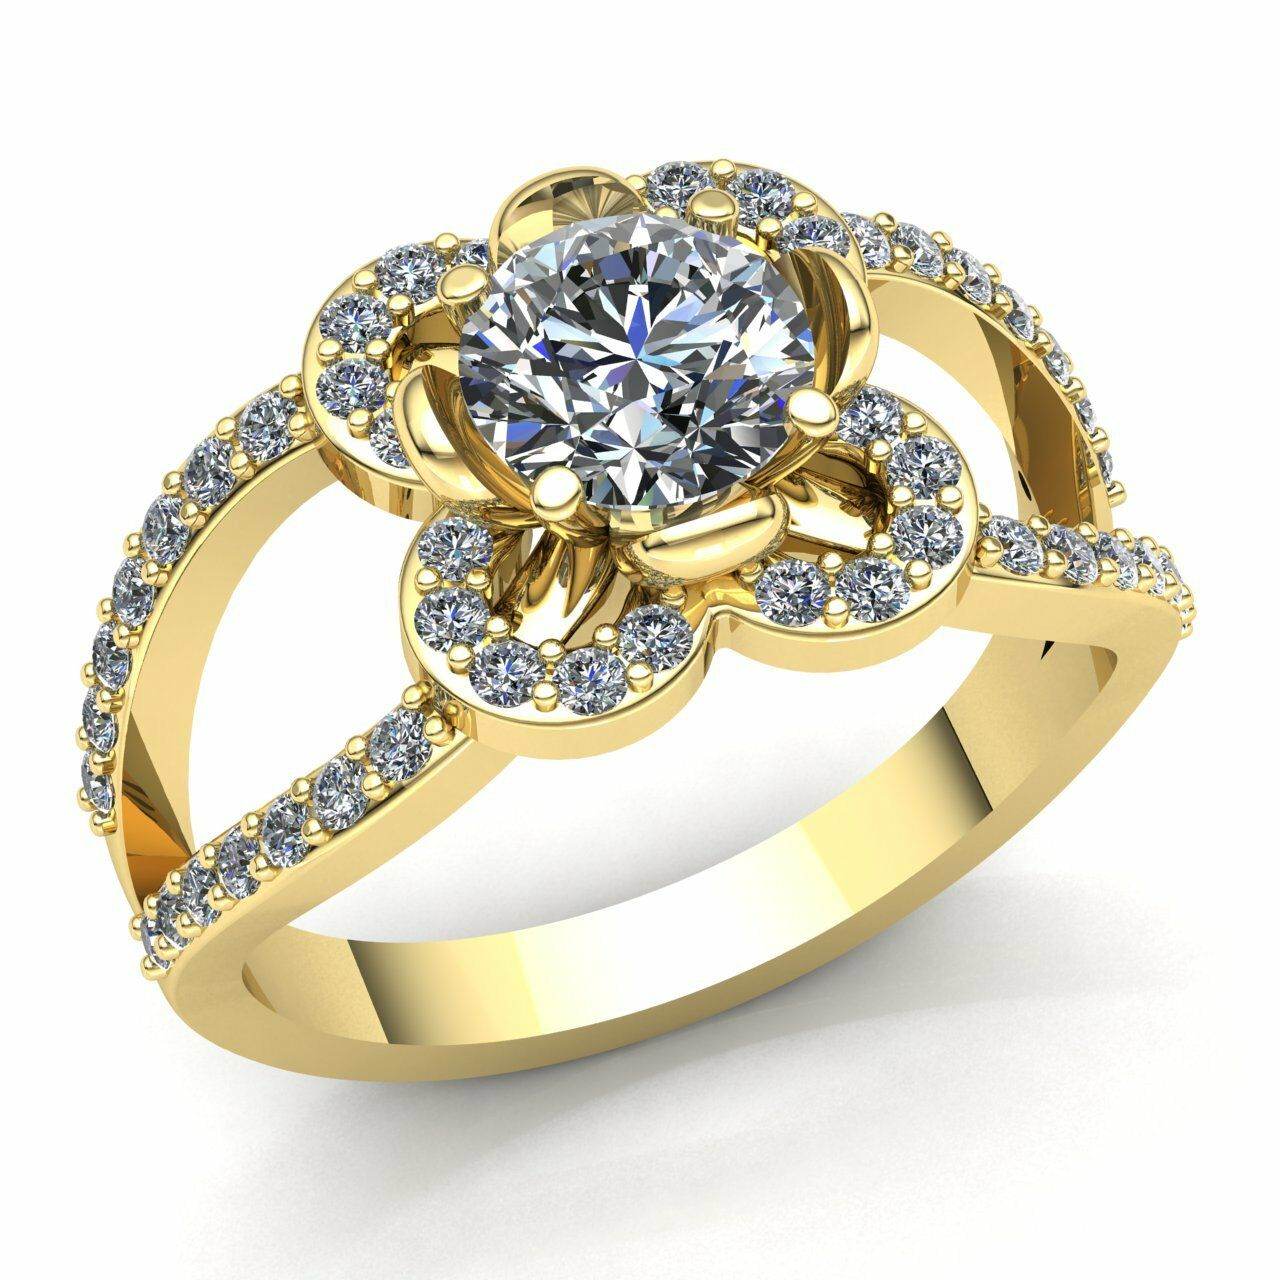 0.75ctw Round Cut Diamond Ladies Halo Solitaire Engagement Ring 10K gold